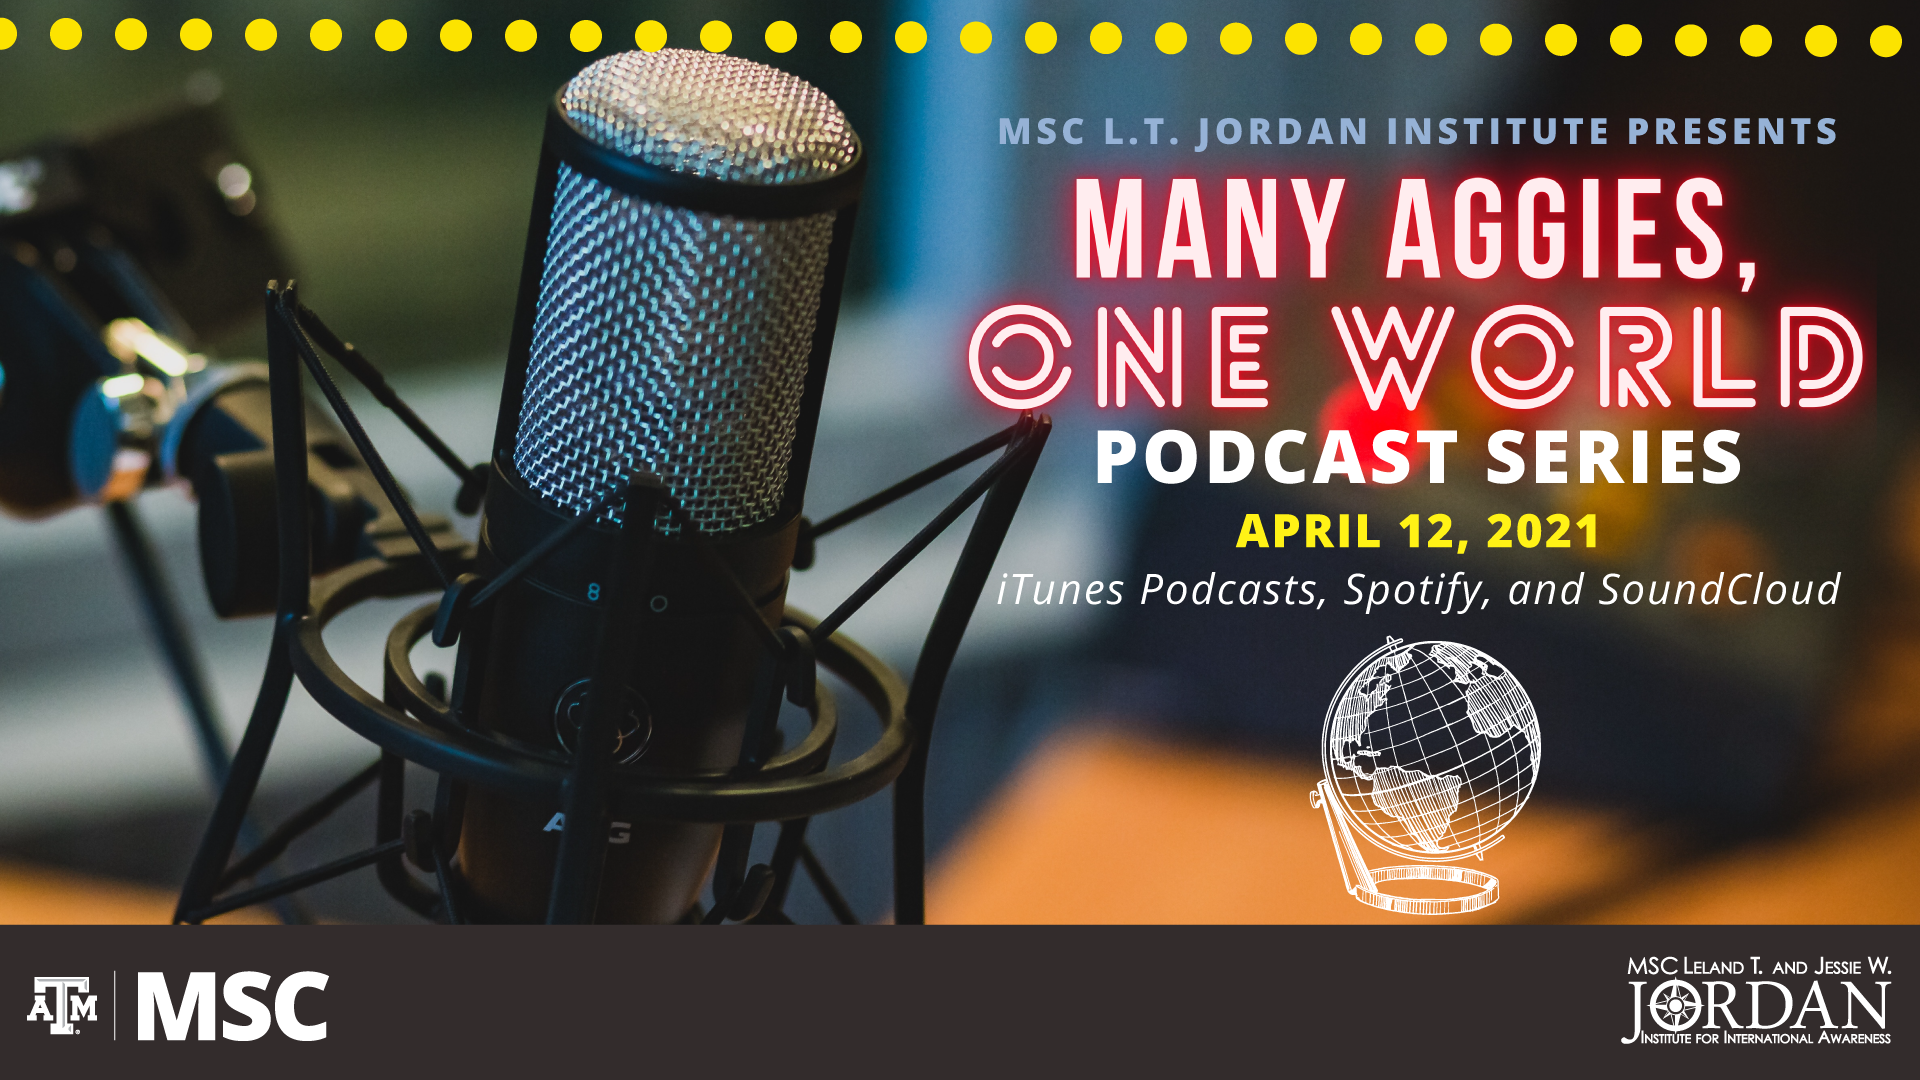 "MSC L.T. Jordan Institute Presents ""Many Aggies, One World"" Podcast Series New episode on April 12, 2021 at iTunes Podcast, Spotify, and SoundCloud"